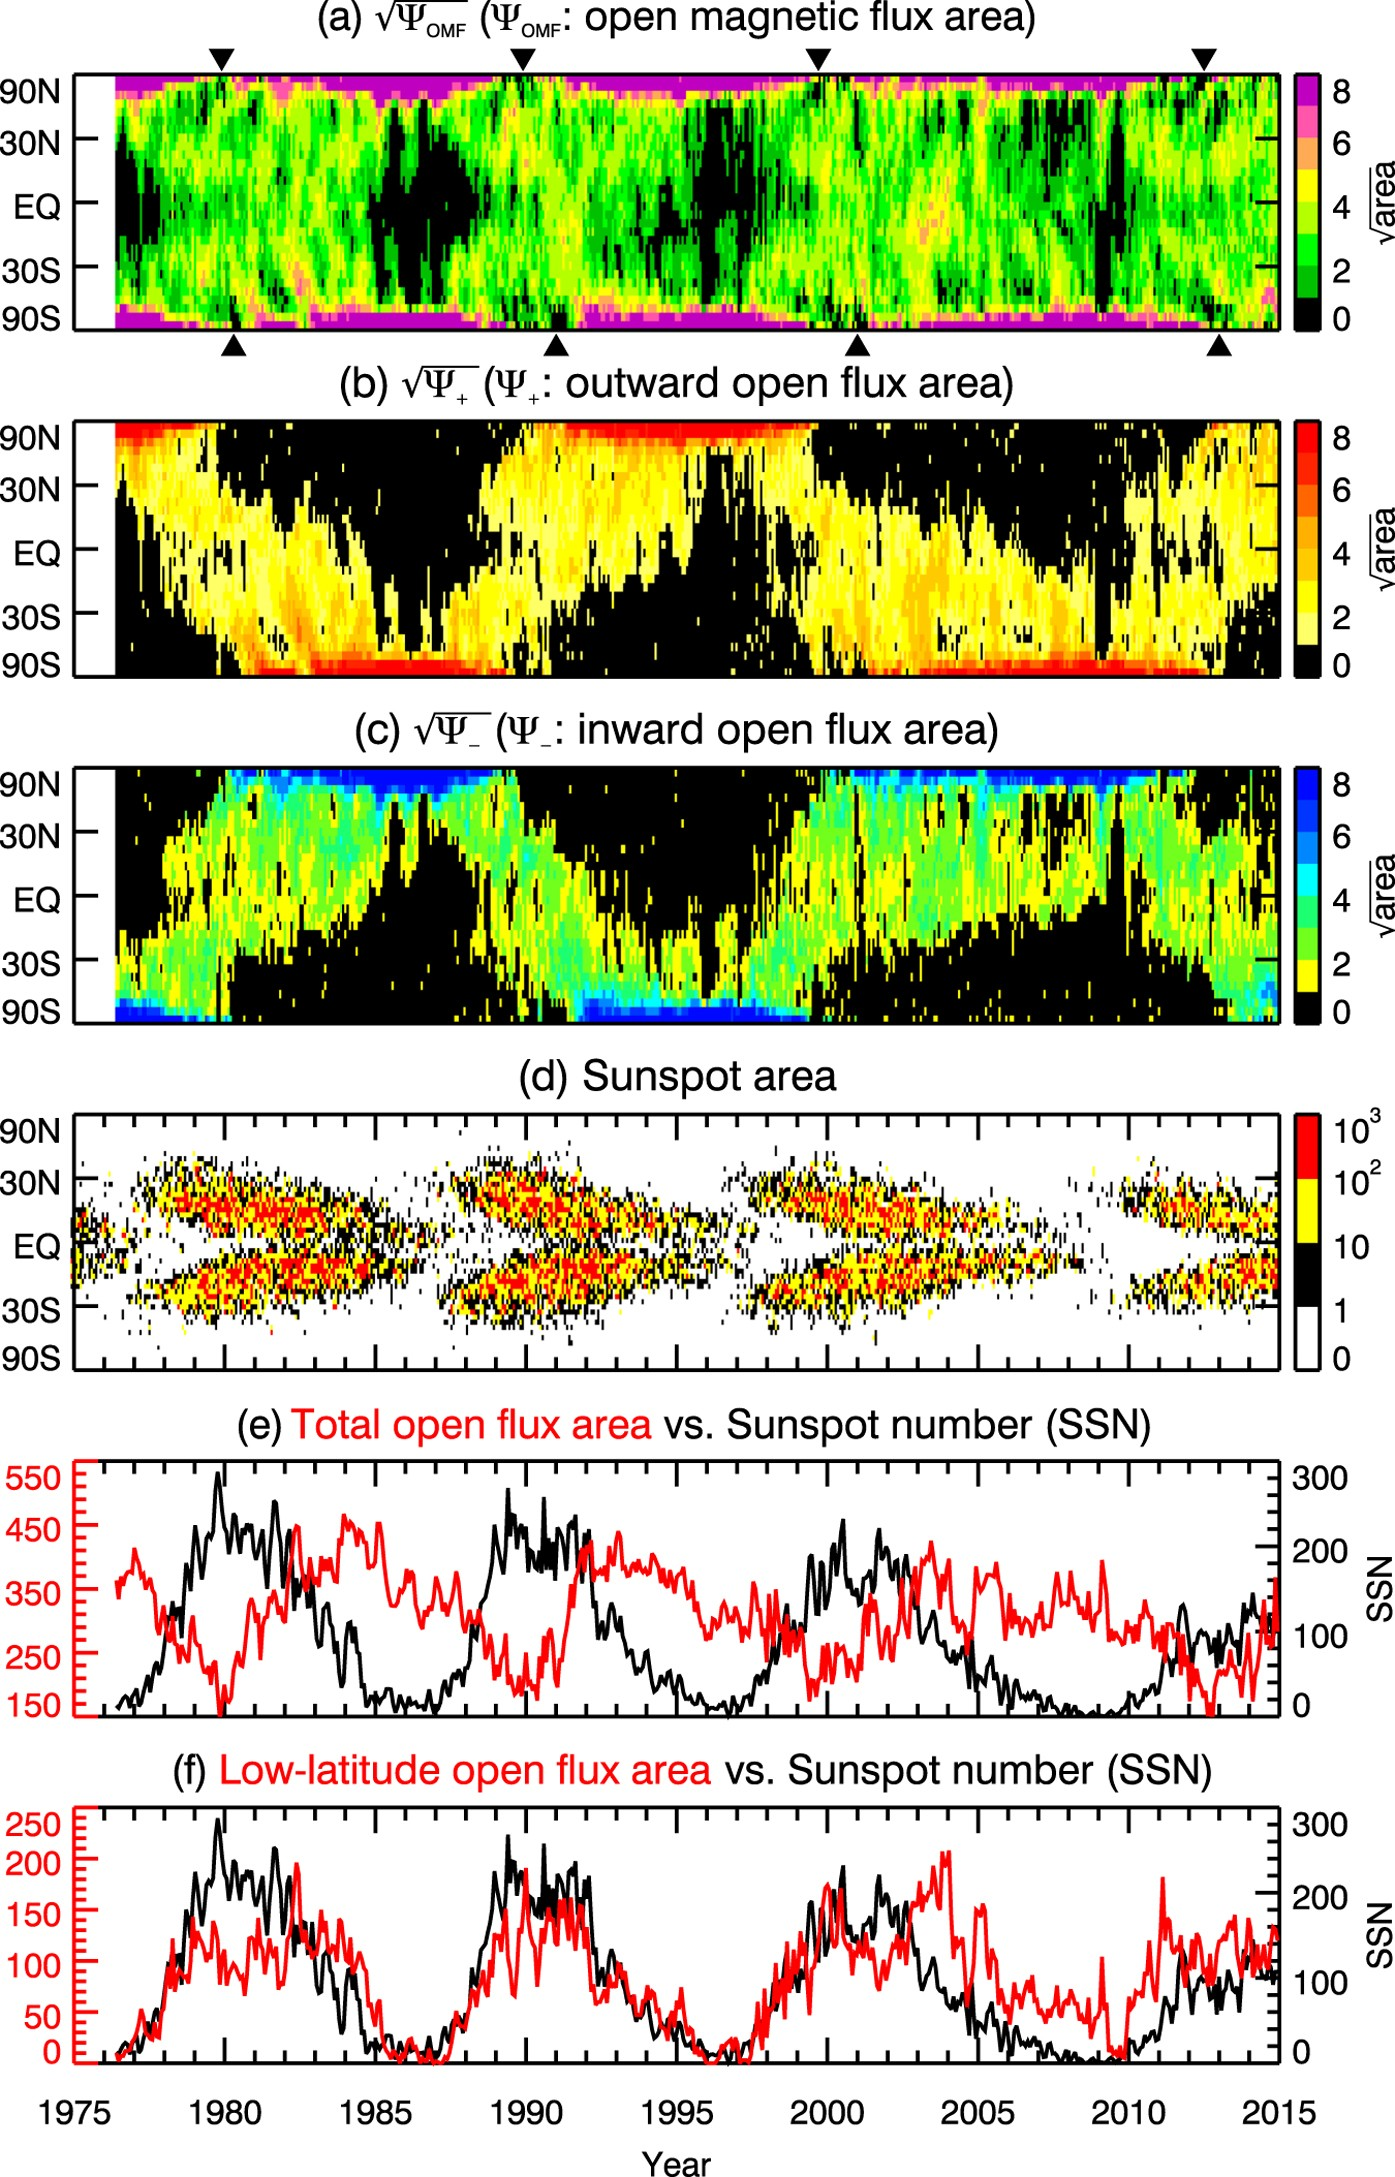 Solar Open Flux Migration from Pole to Pole: Magnetic Field Reversal